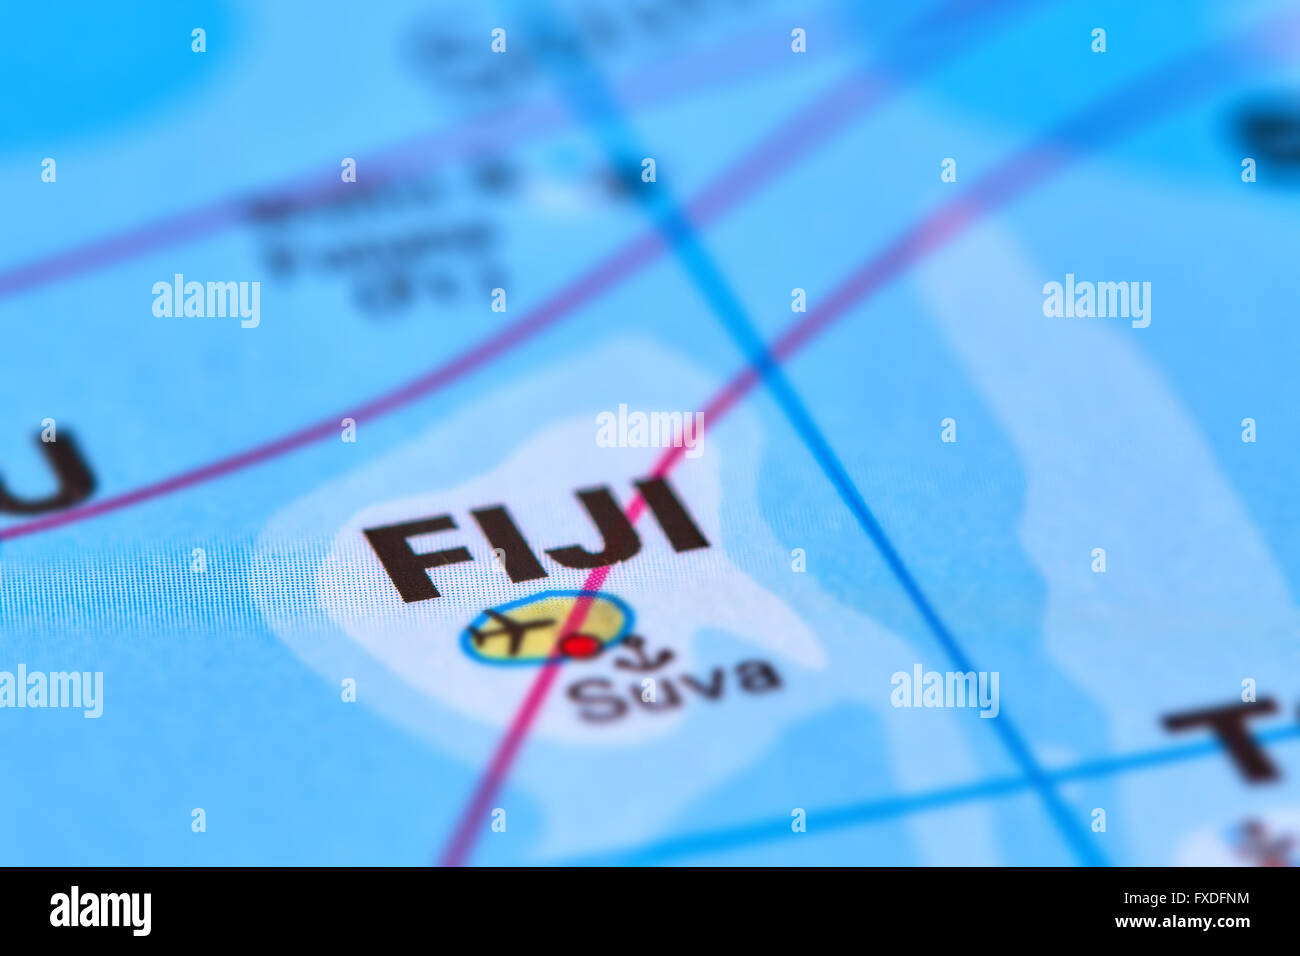 Fiji Island Location World Map.Fiji Island In Oceania On The World Map Stock Photo 102330640 Alamy